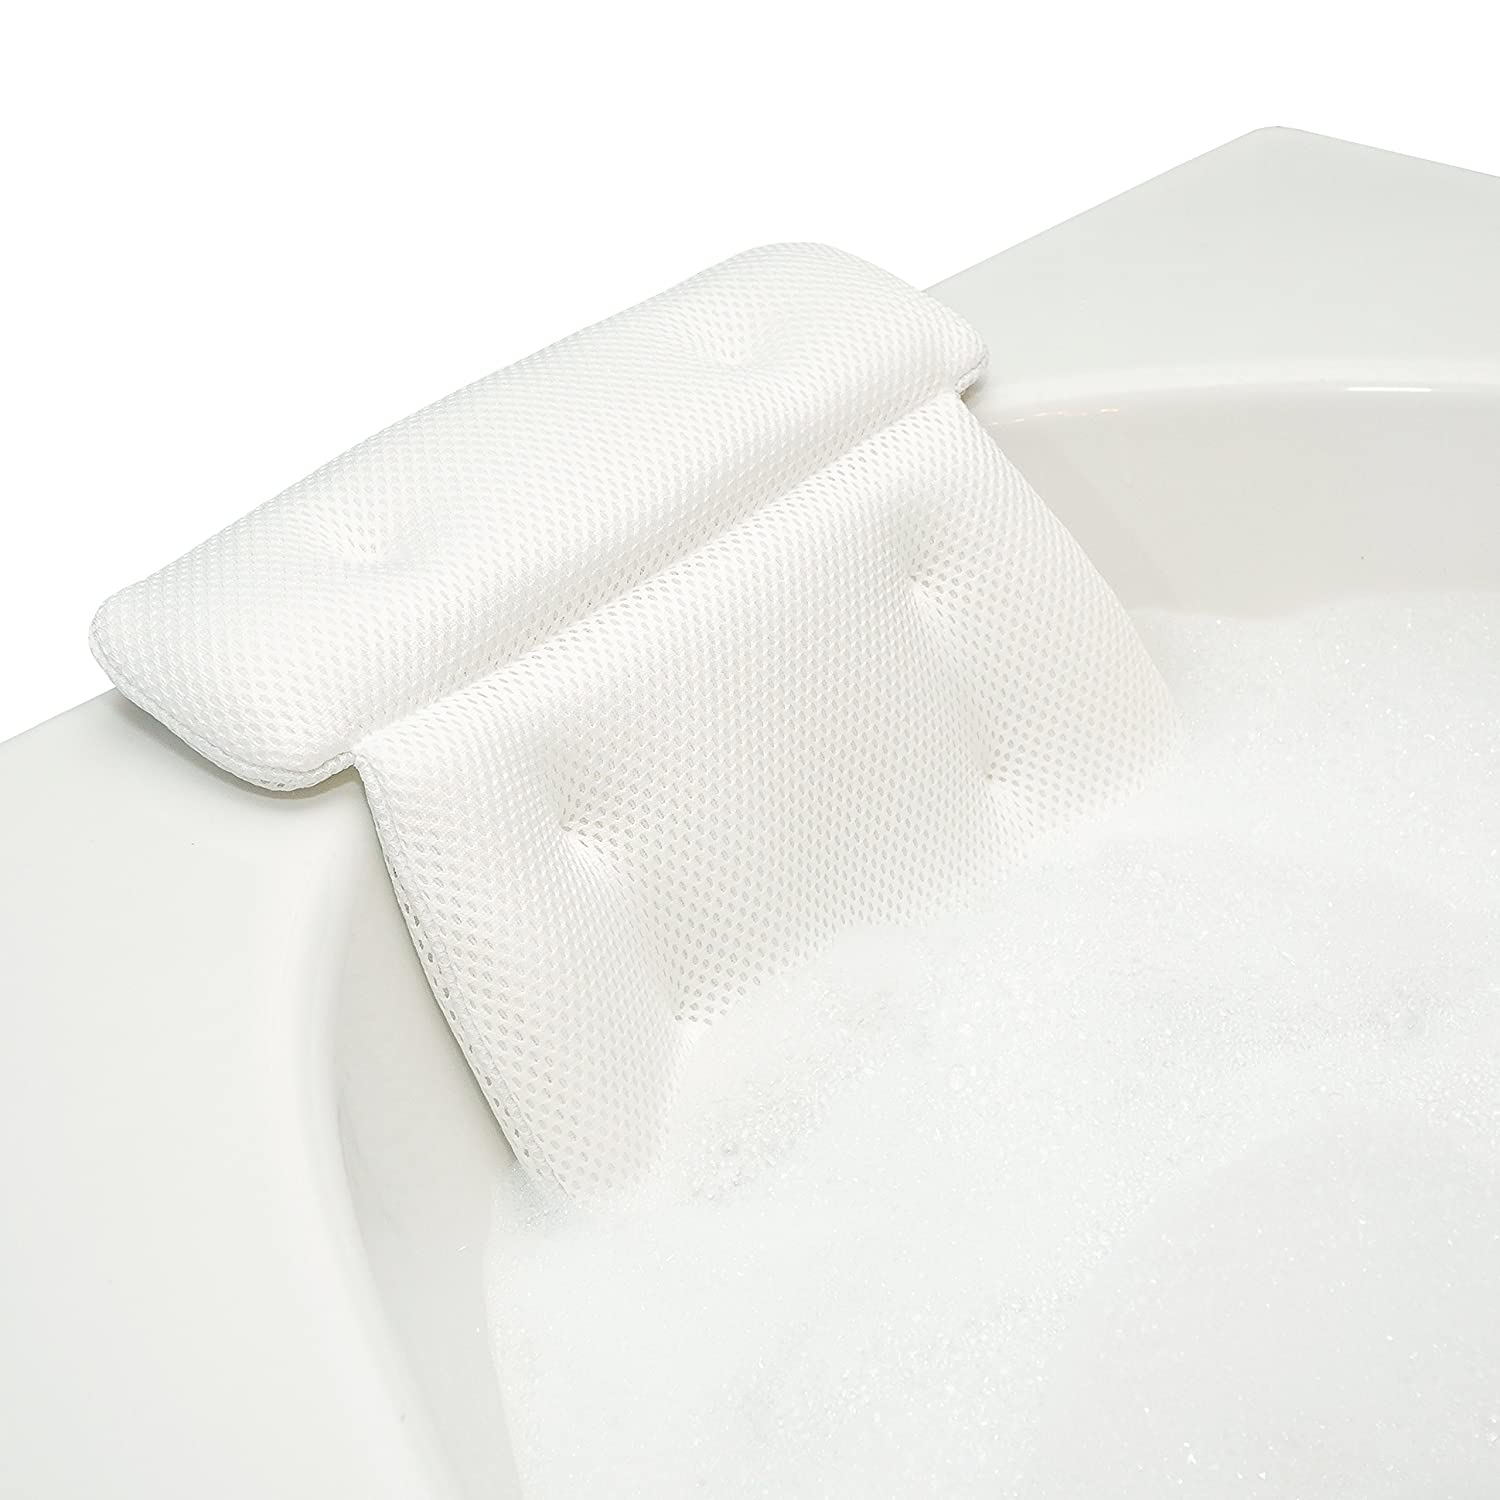 QuiltedAir Bath Pillow - Luxury Bathtub Pillow with 3D Air Mesh Technology, Machine Washable - Quick-Drying and Includes Washing Bag and Travel Case, White Bath Haven